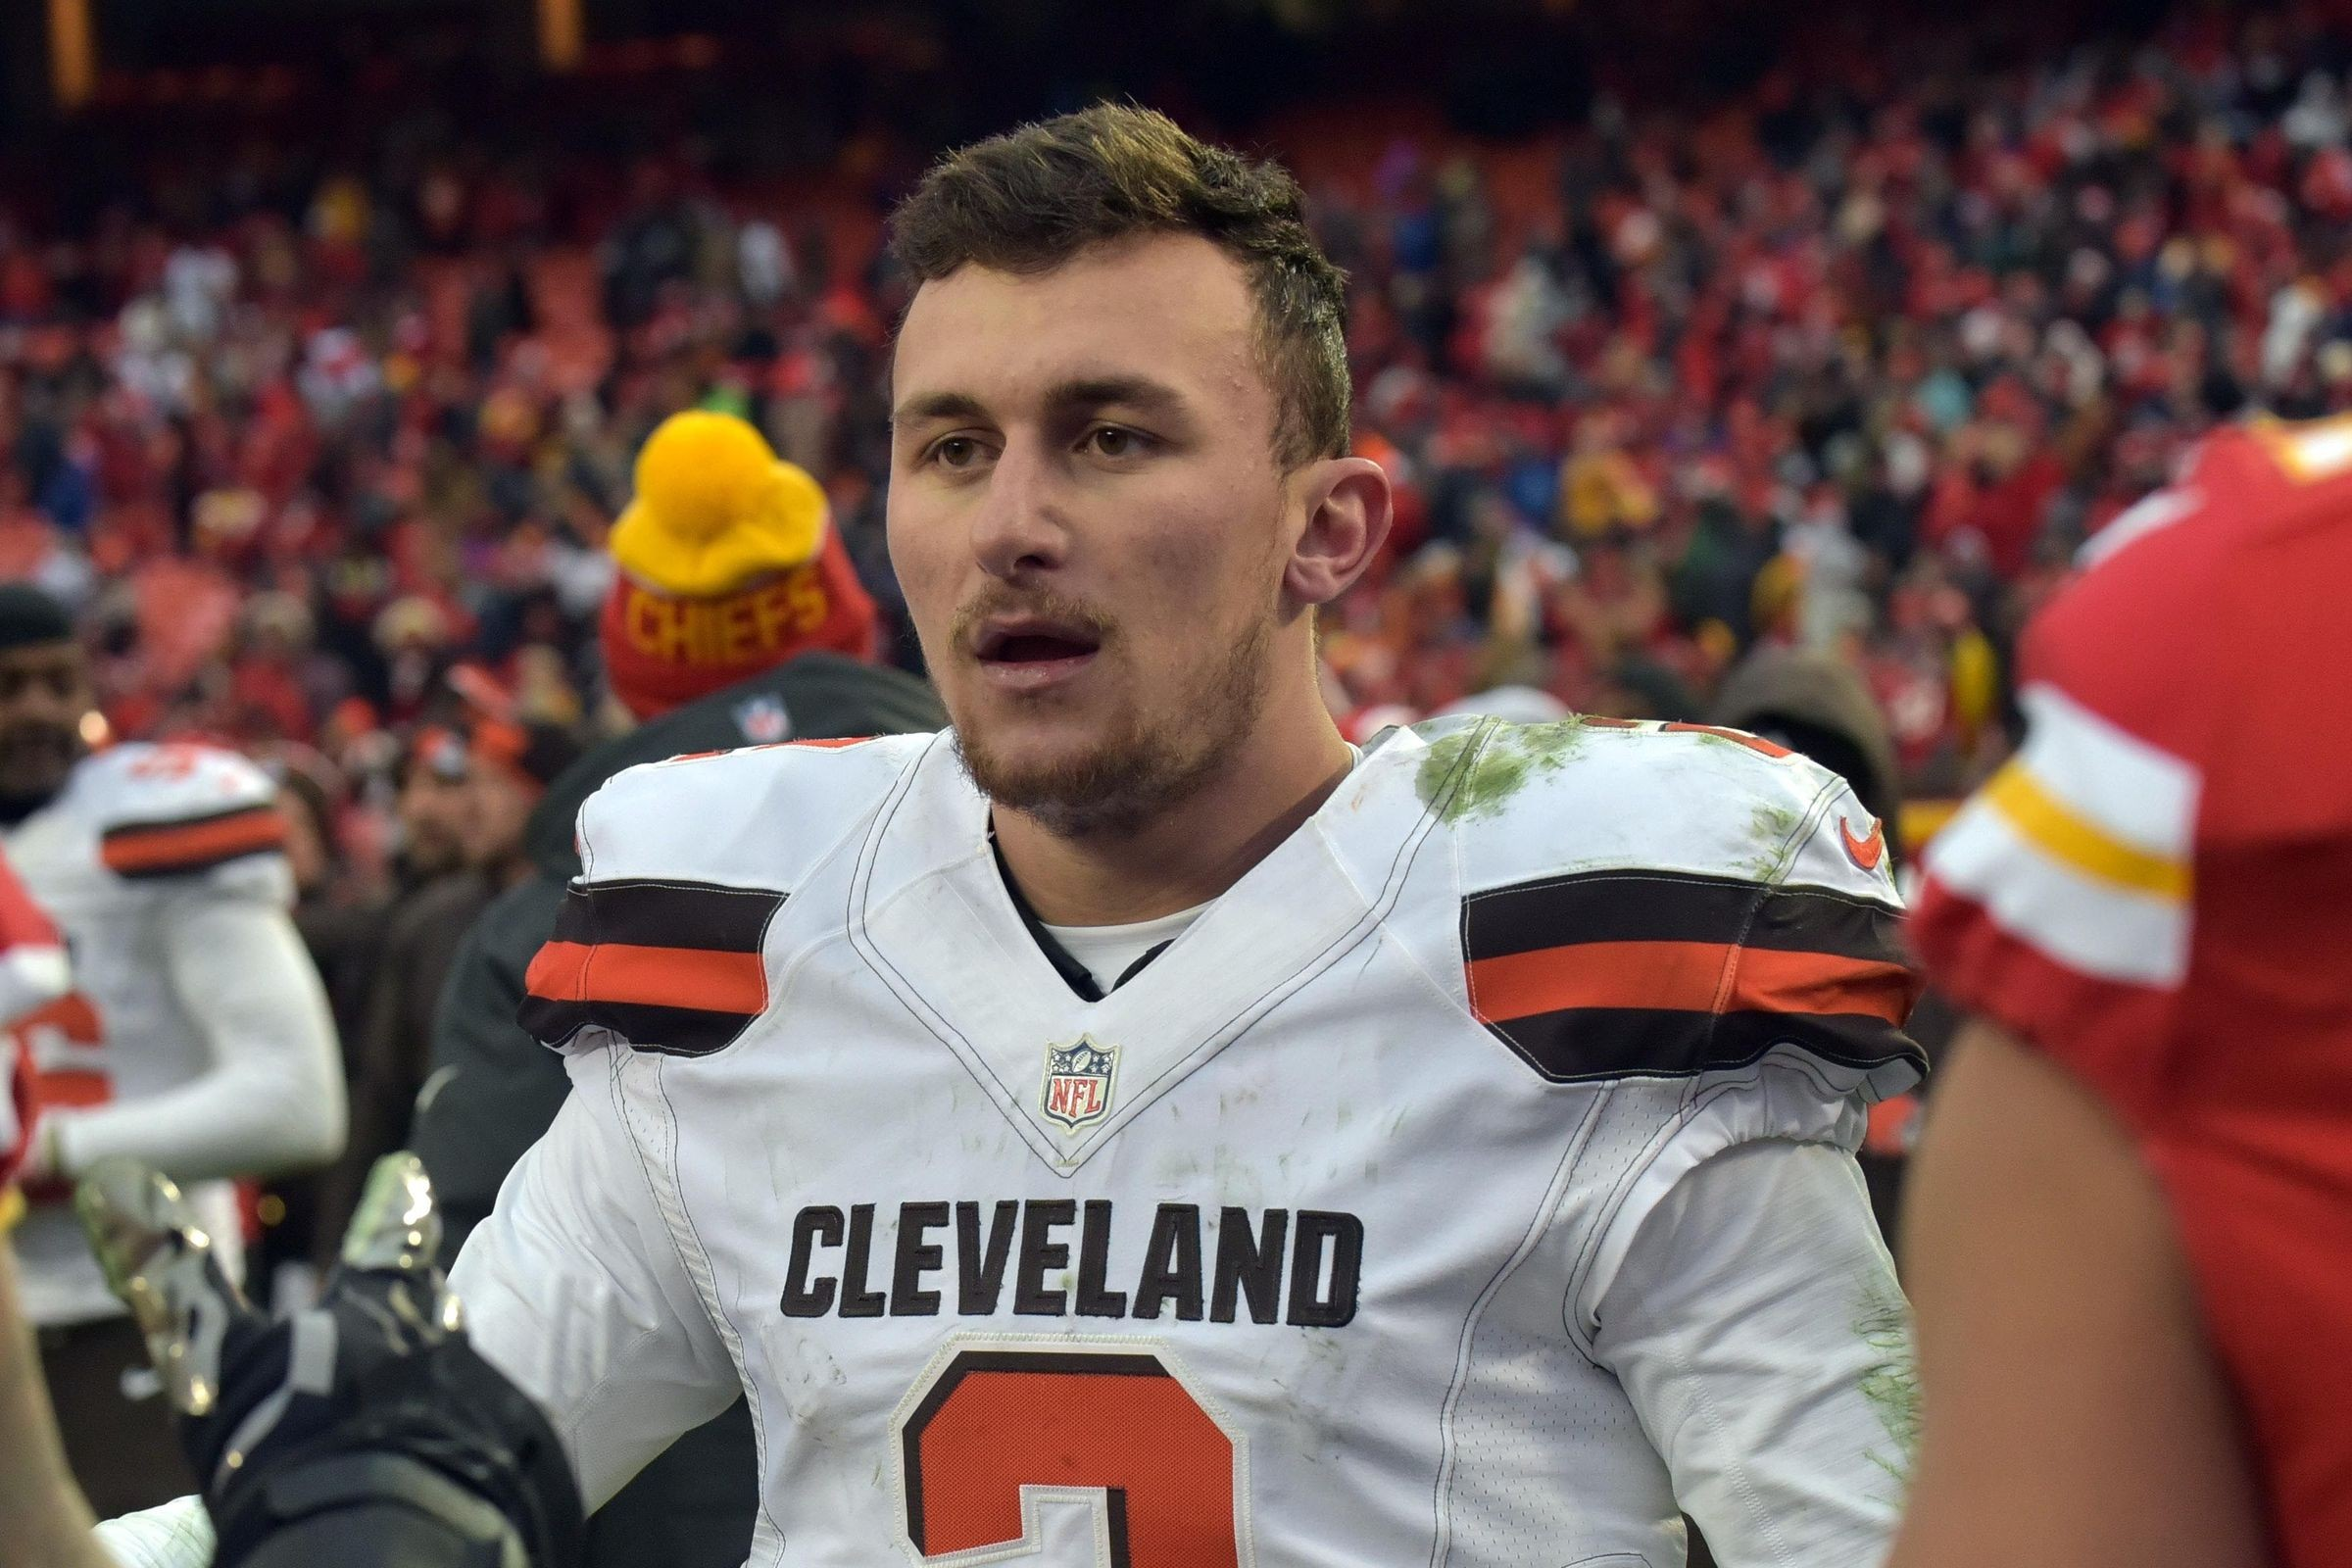 Johnny Manziel continues his partying ways